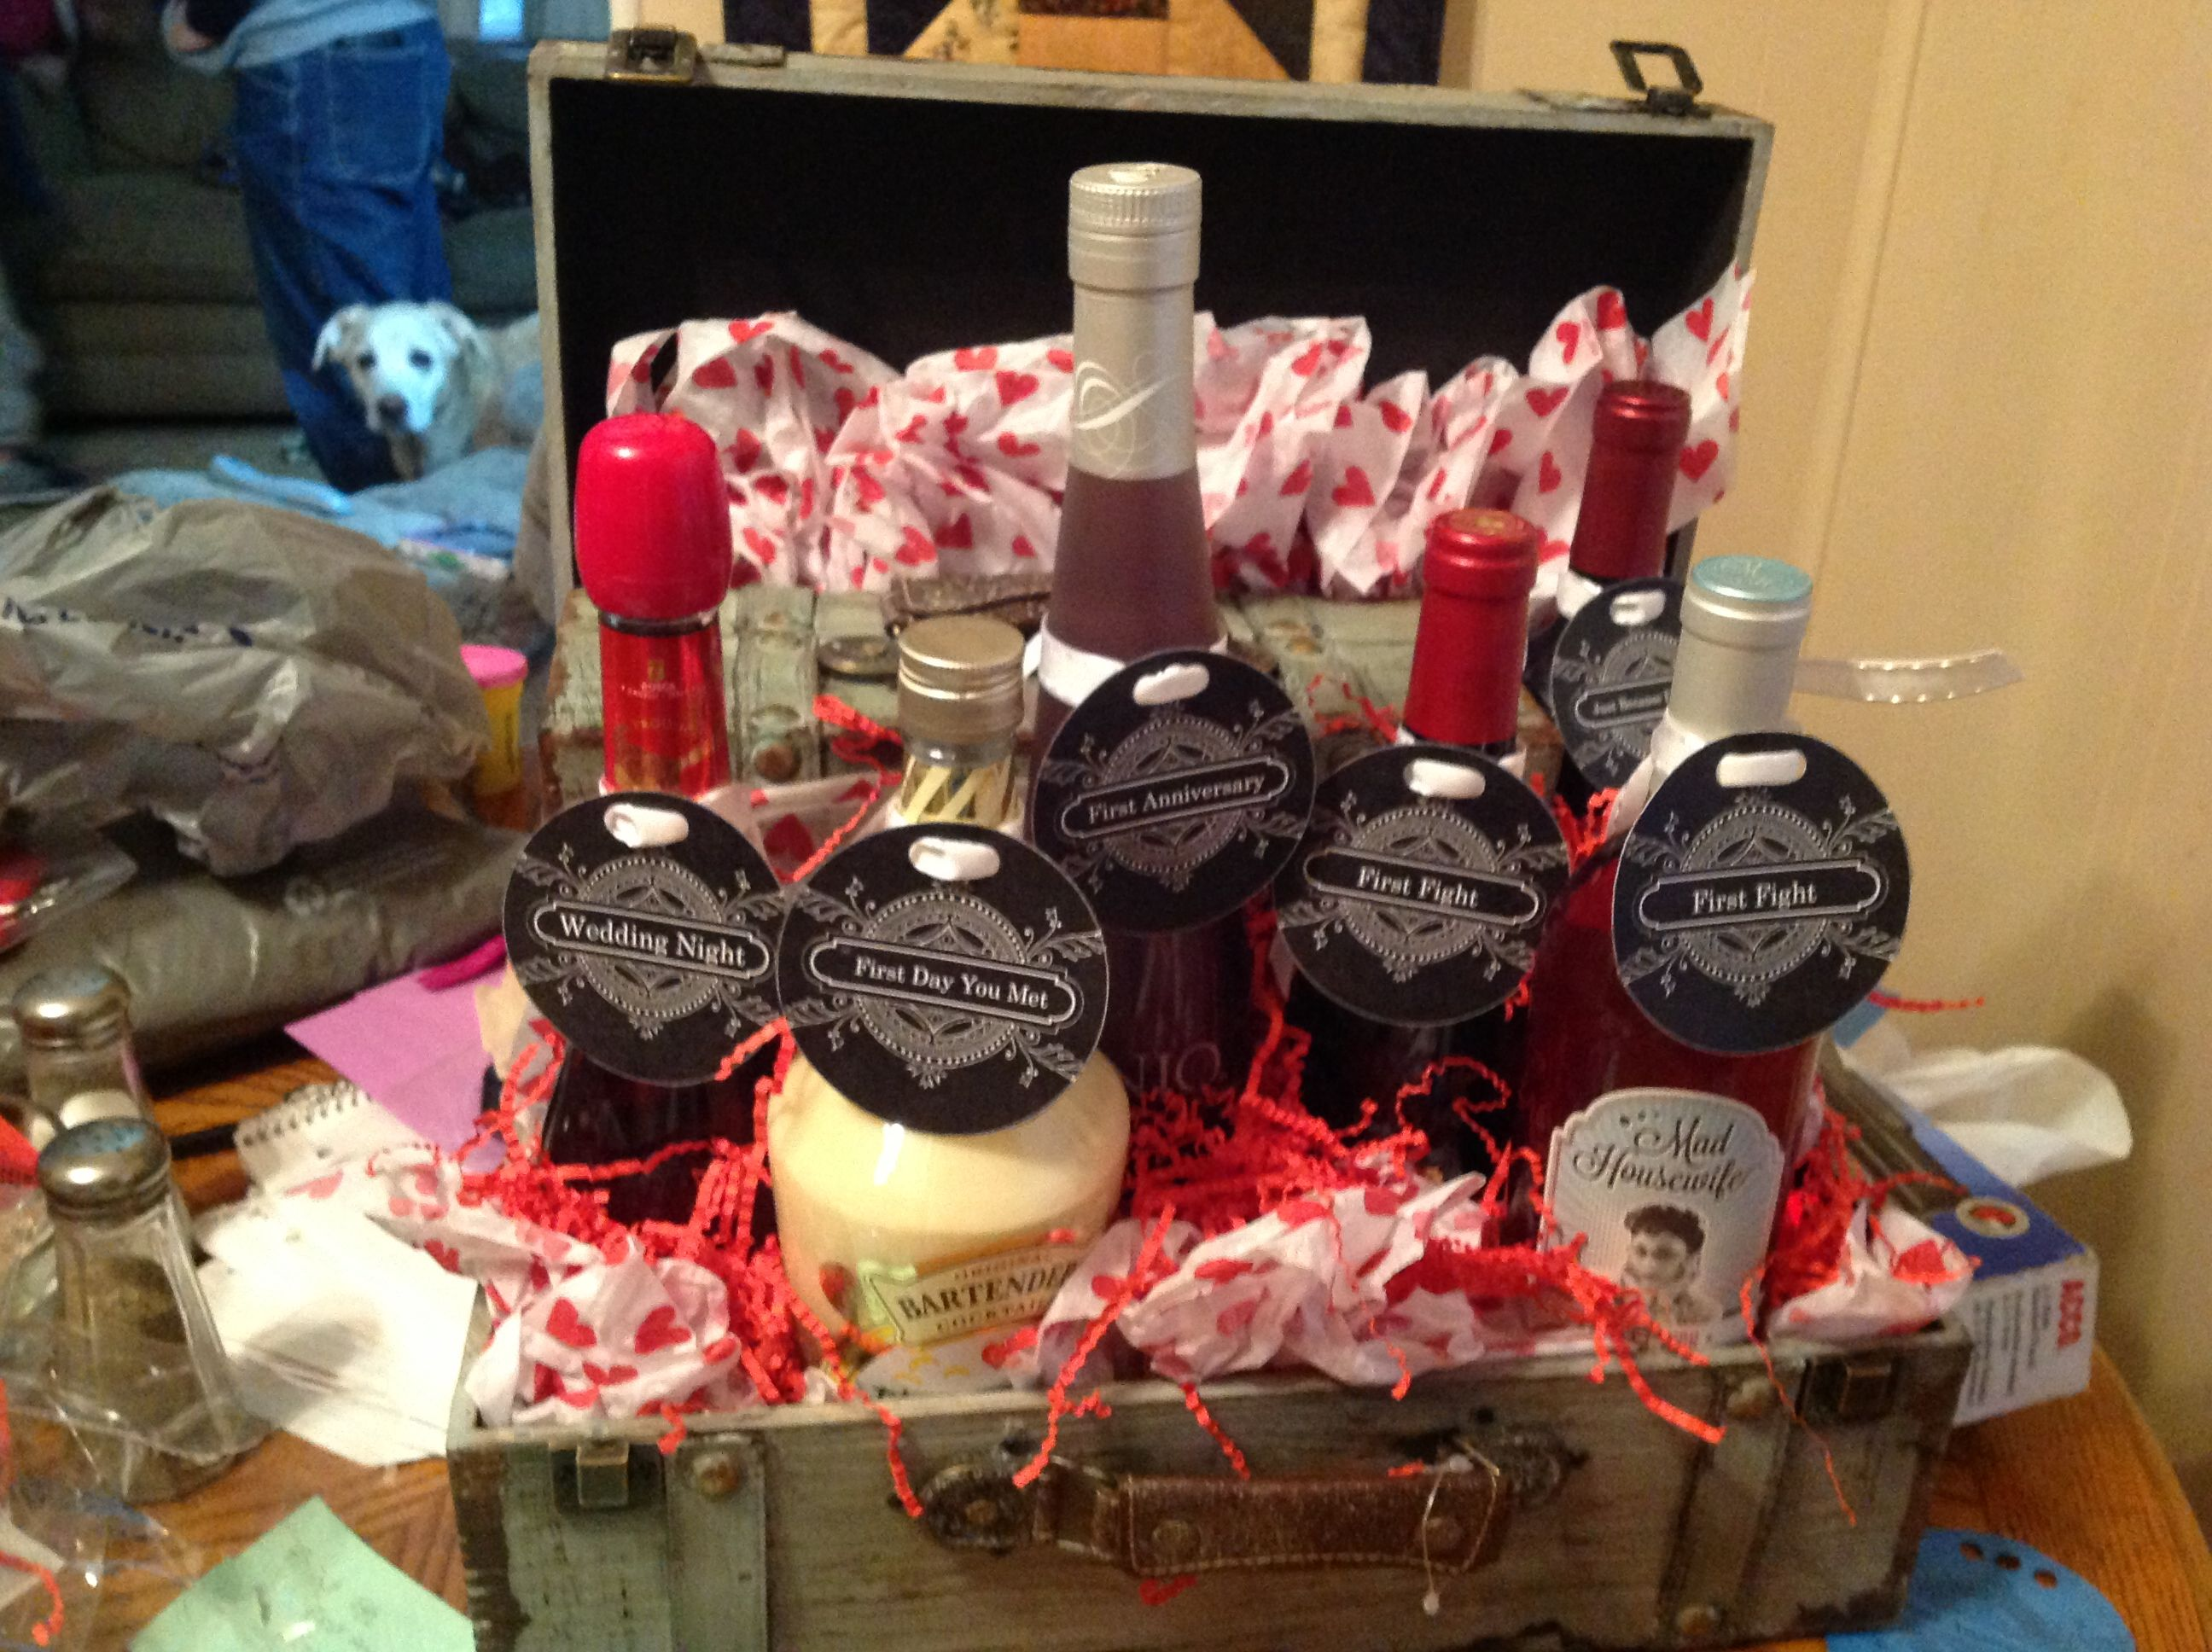 Liquor wine gift basket first anniversary i used viniq for Dinner party gift ideas